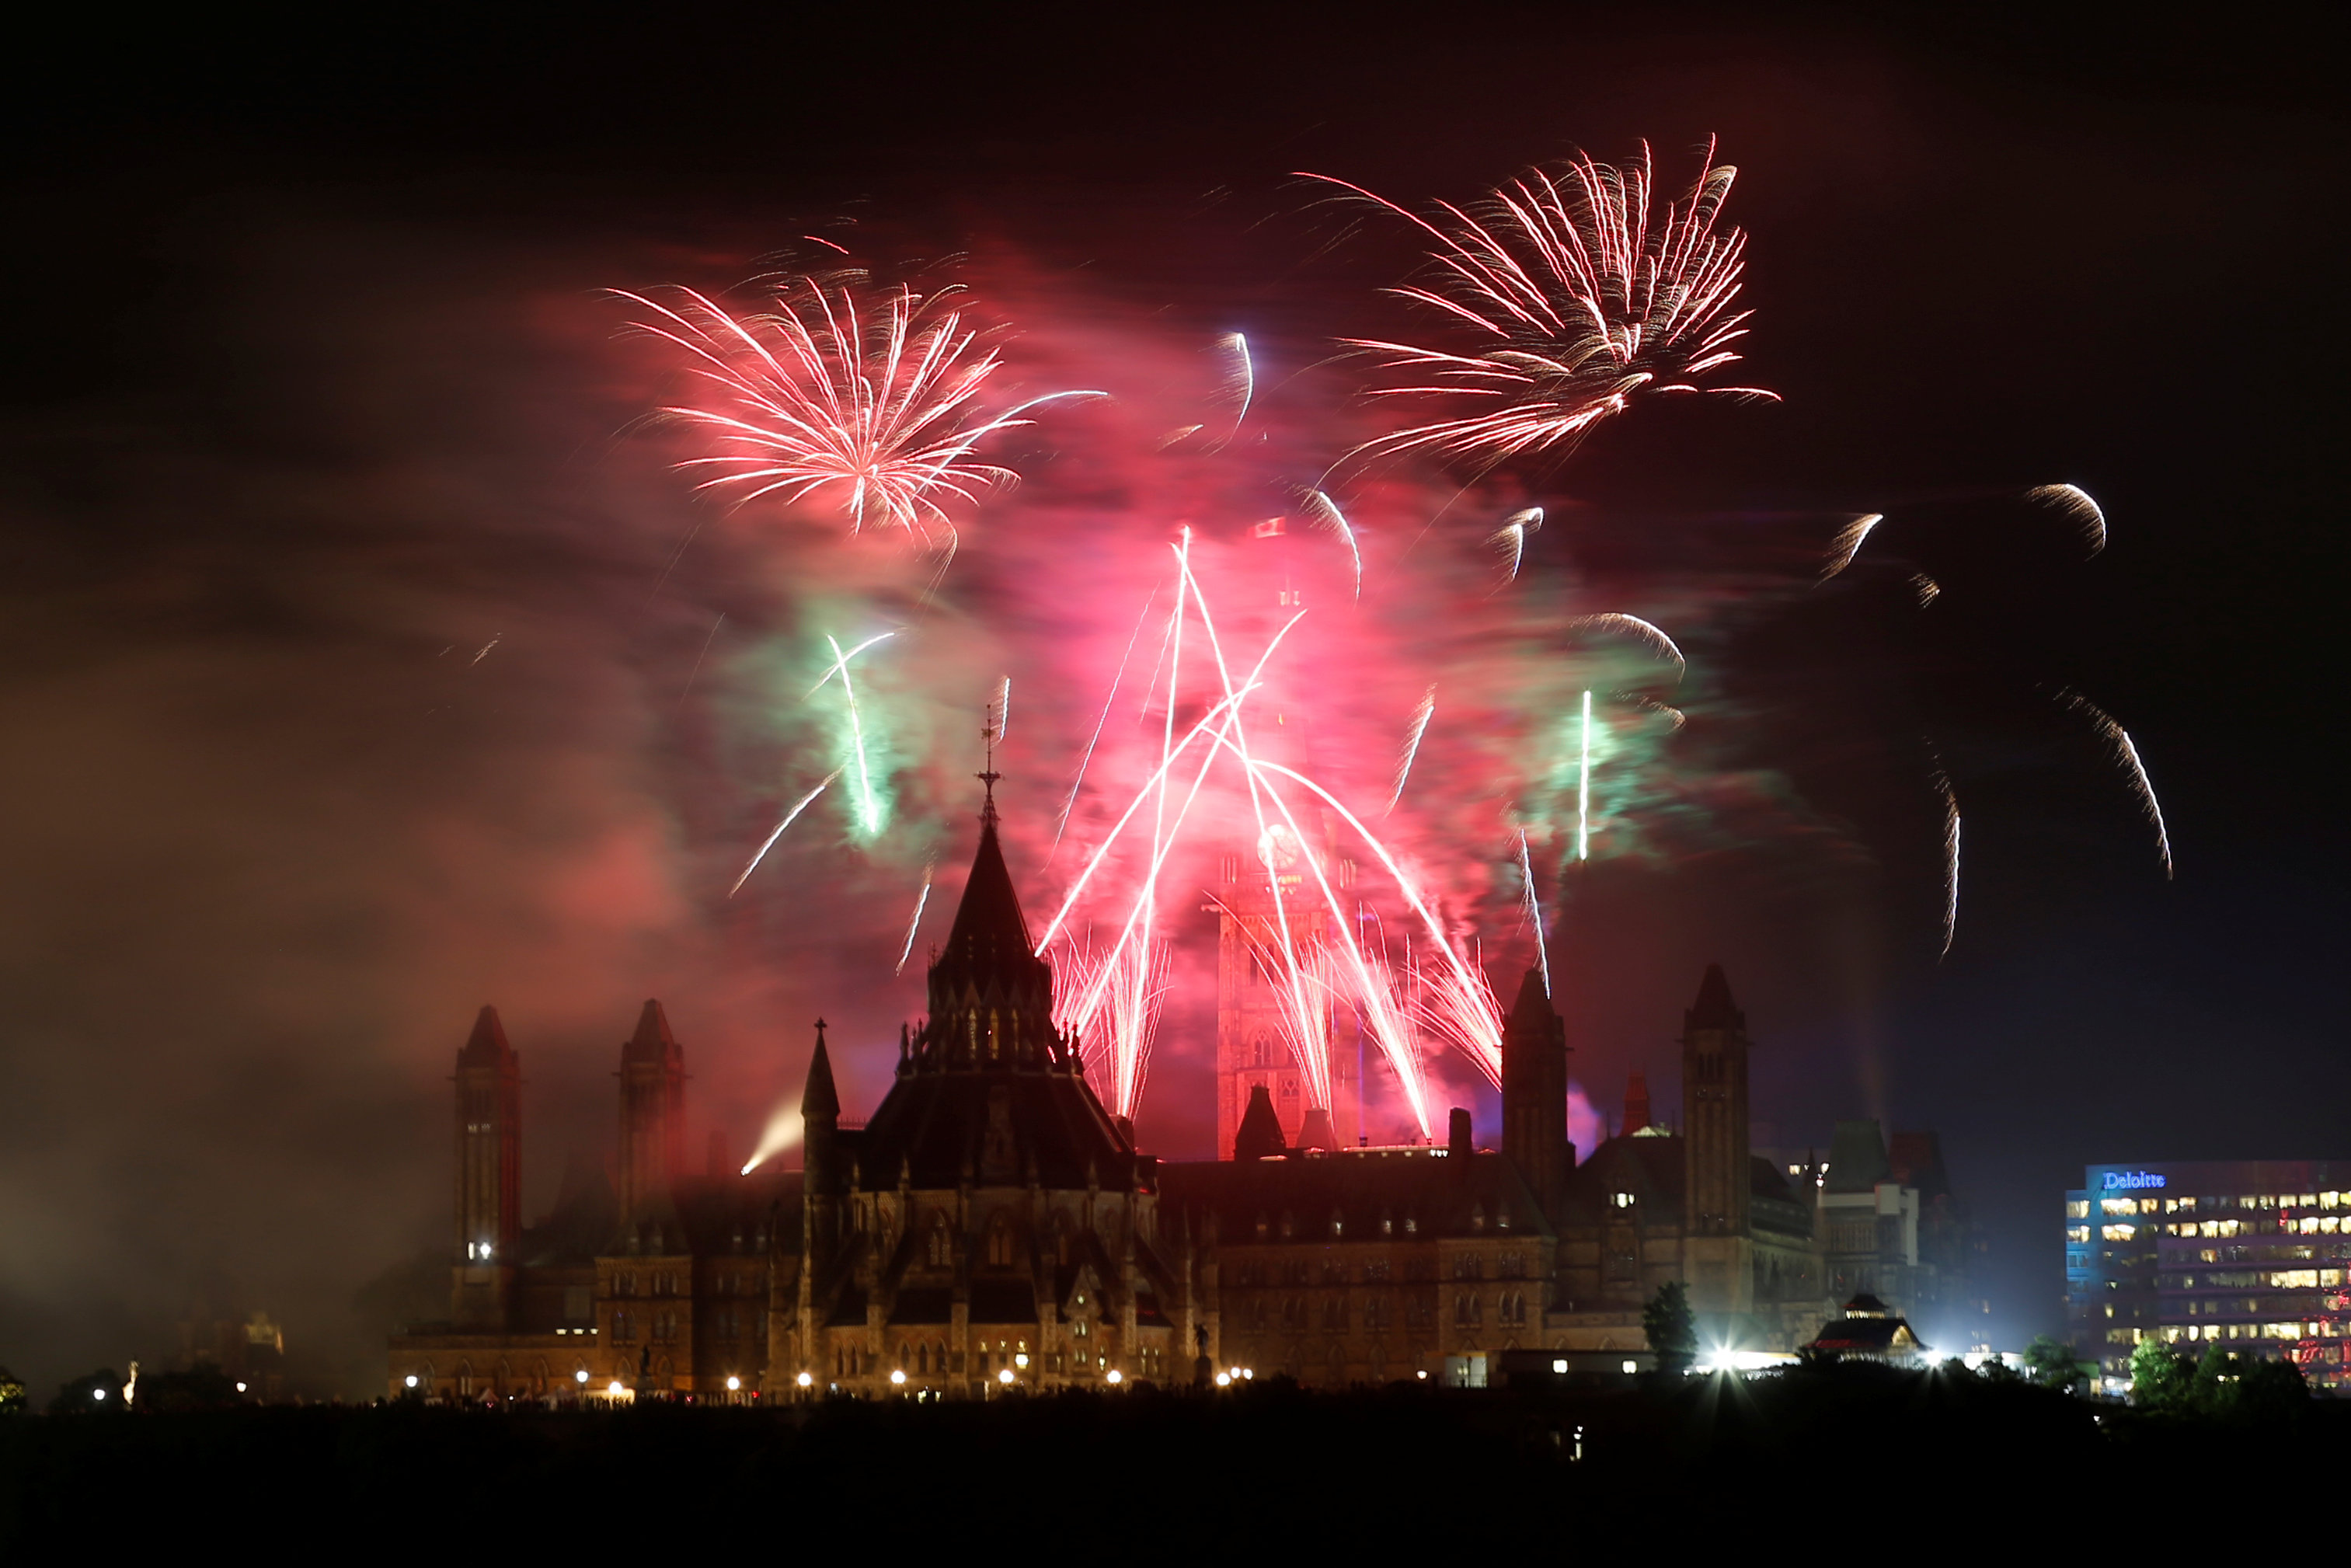 Fireworks explode over Ottawa's Parliament Hill as part of Canada Day celebrations as the country marks its 150th anniversary since confederation, in Gatineau, Quebec, Canada on July 1, 2017. (REUTERS/Chris Wattie.)